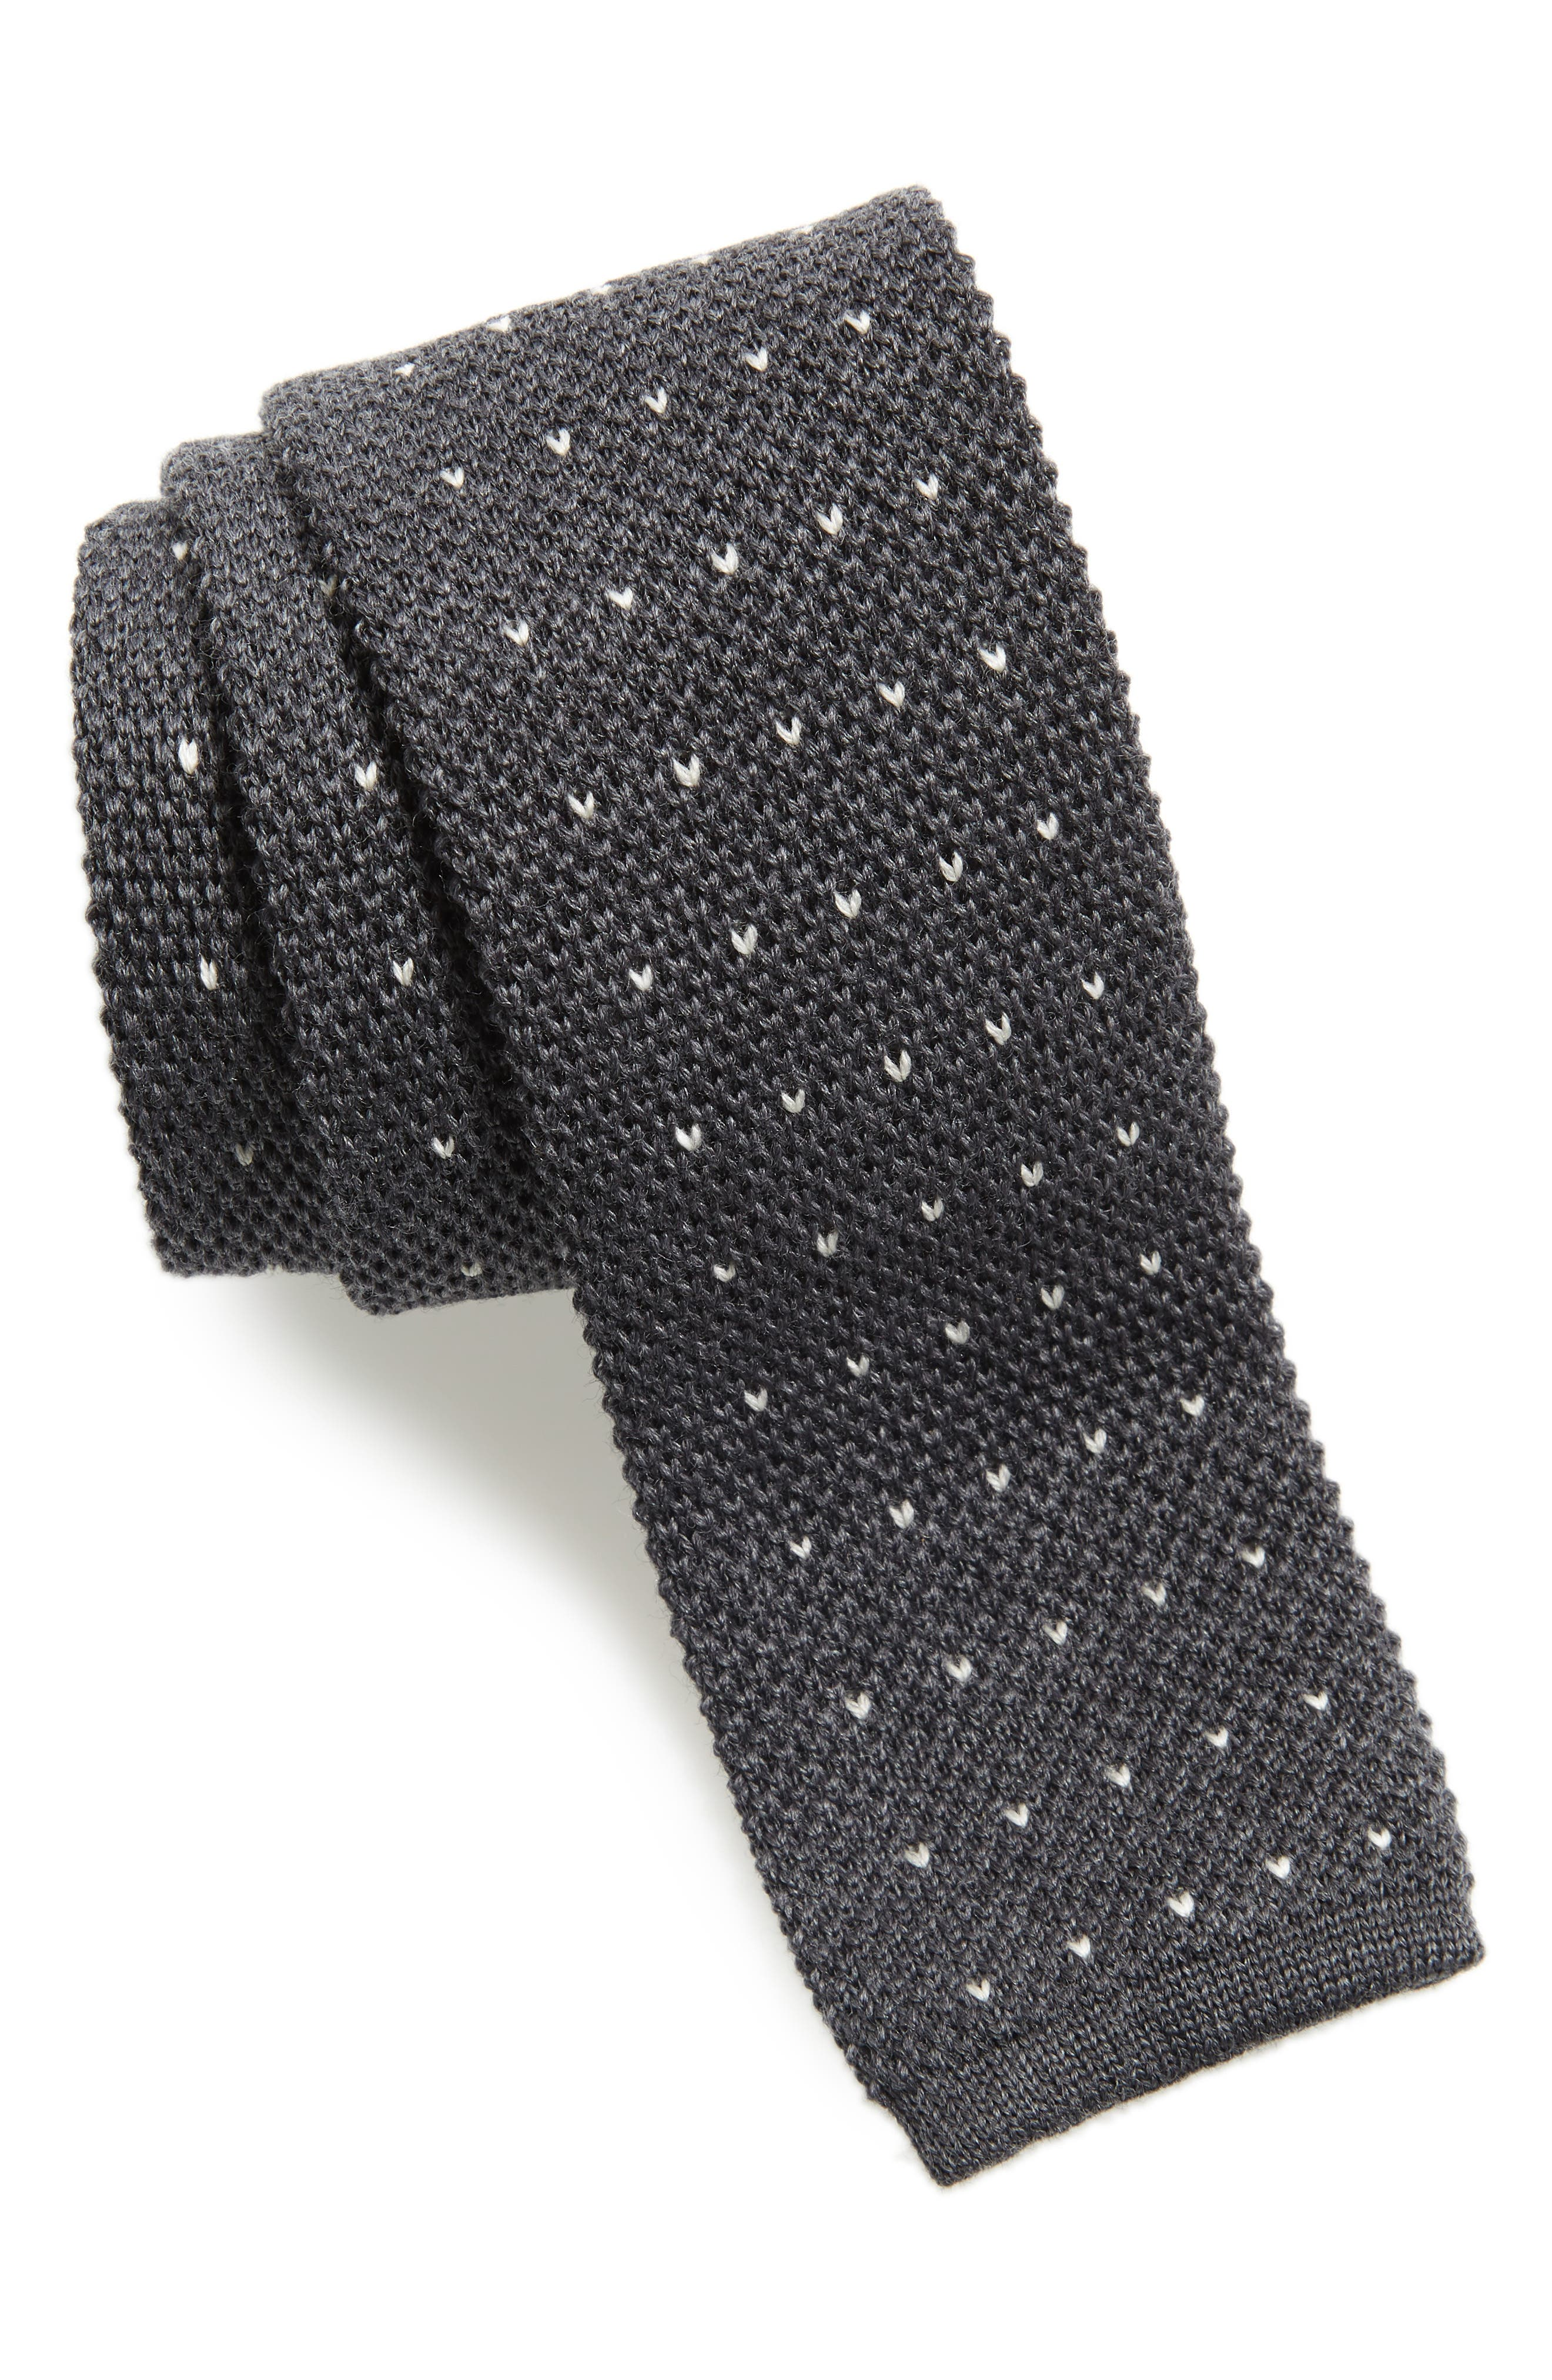 Stitch Wool Knit Tie,                         Main,                         color, GREY/ WHITE